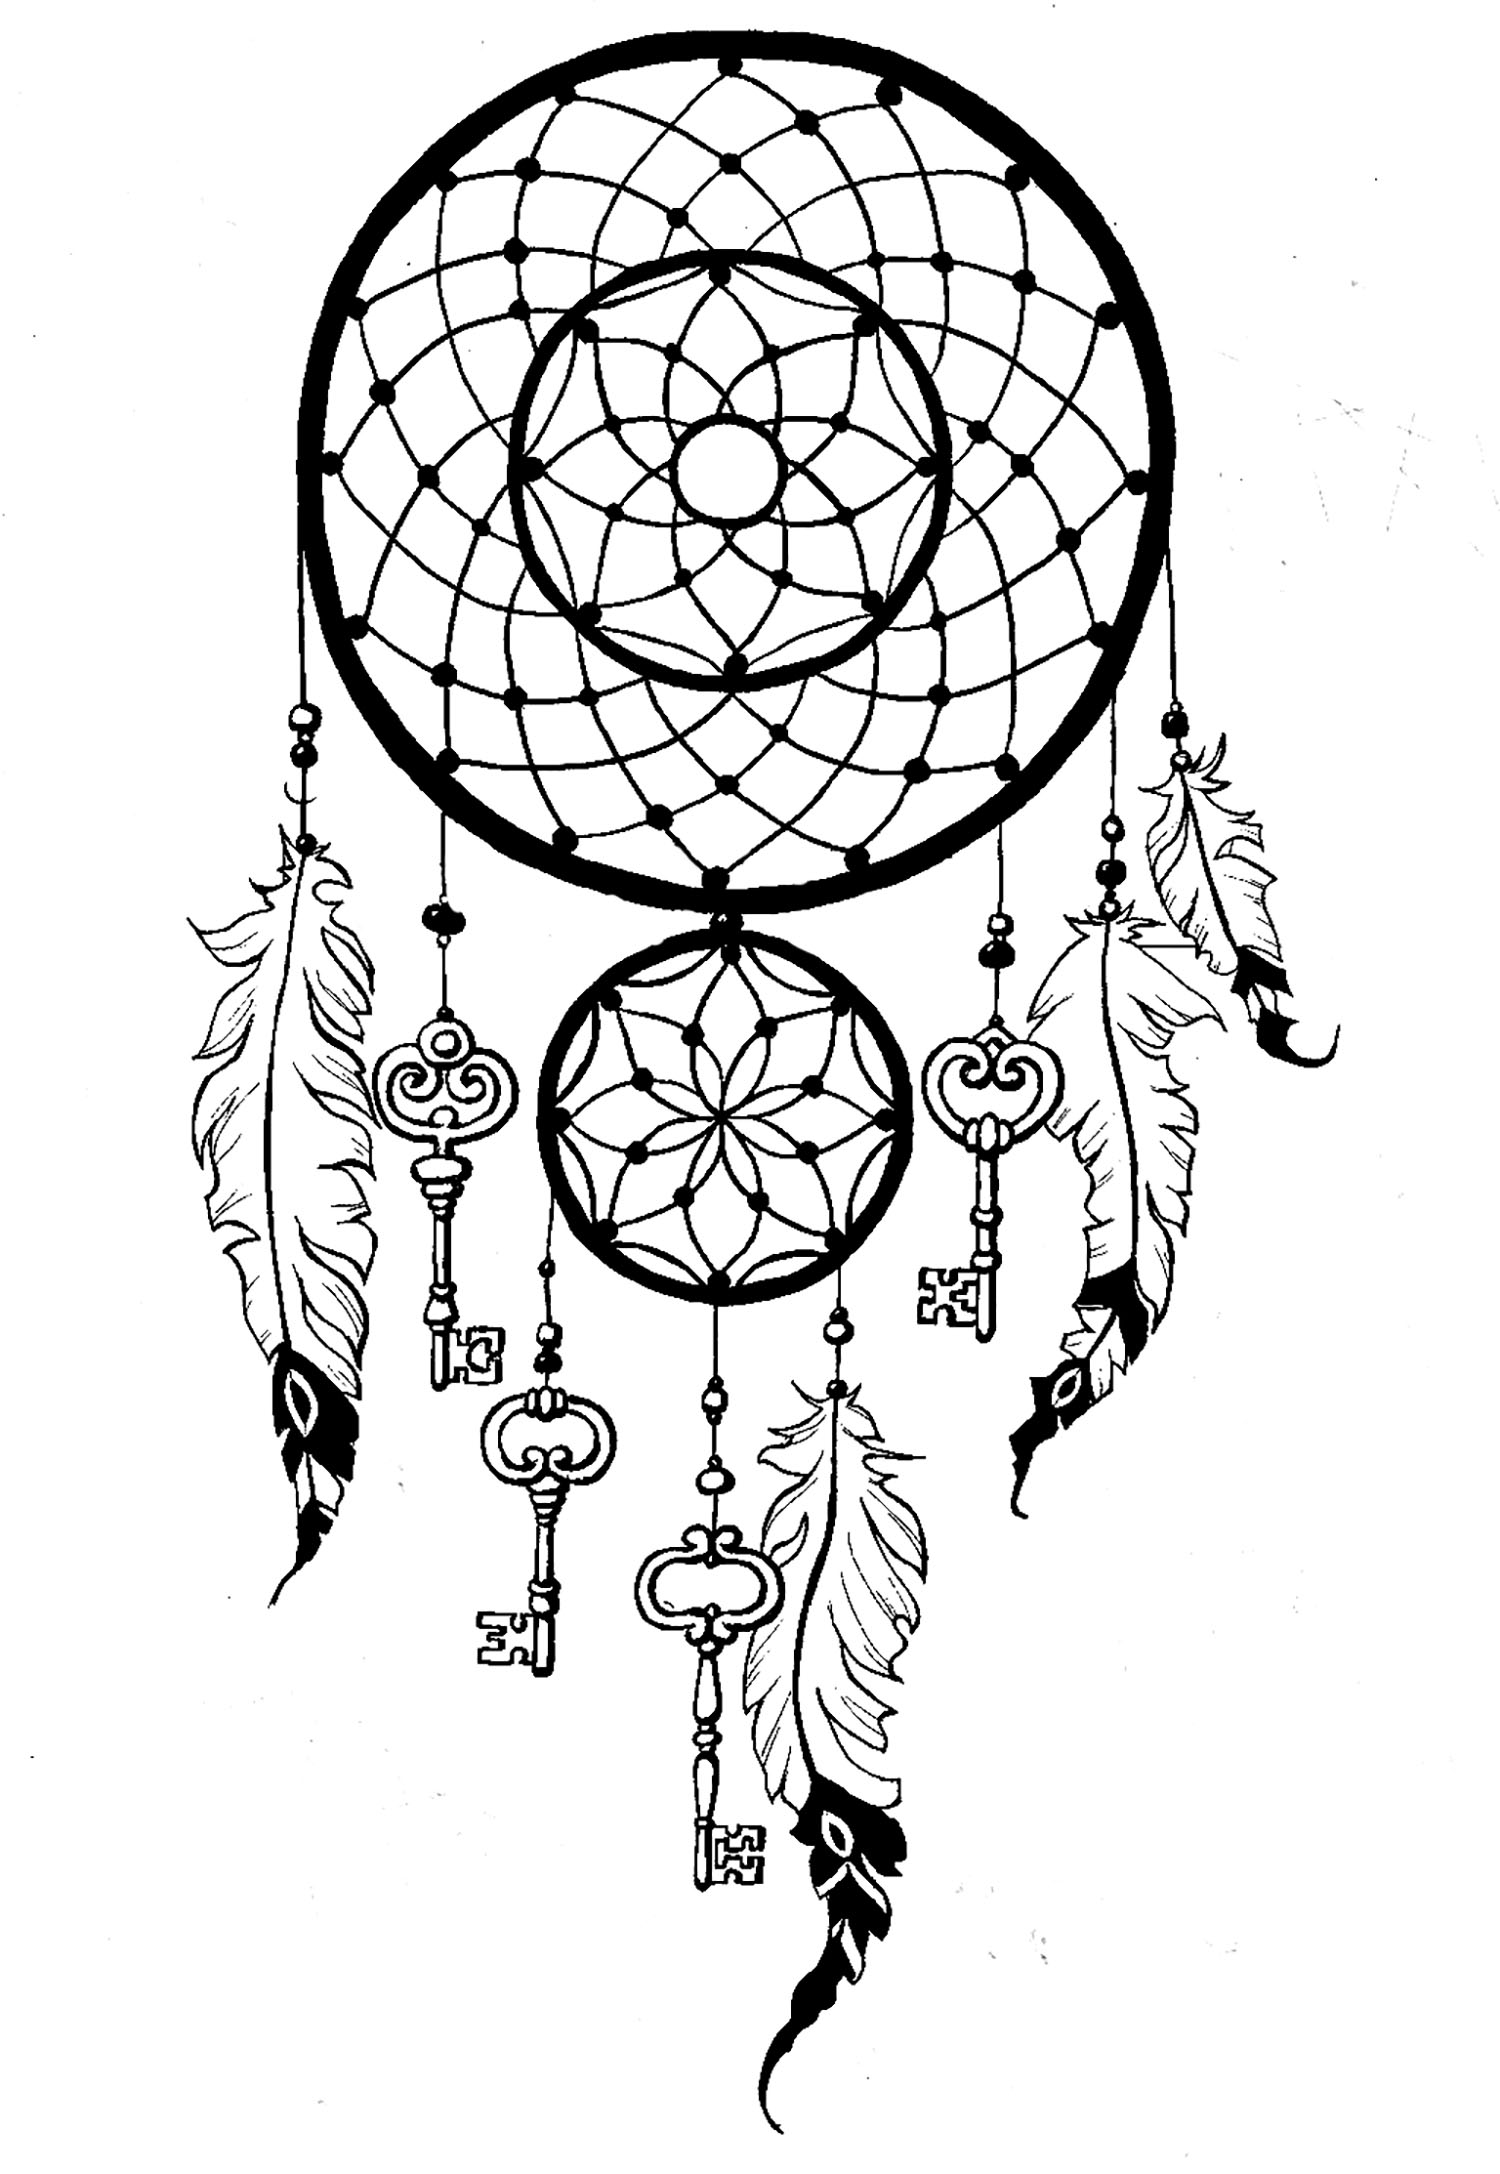 Coloring pictures for adults - Coloring Page Dreamcatcher Keys Free To Print